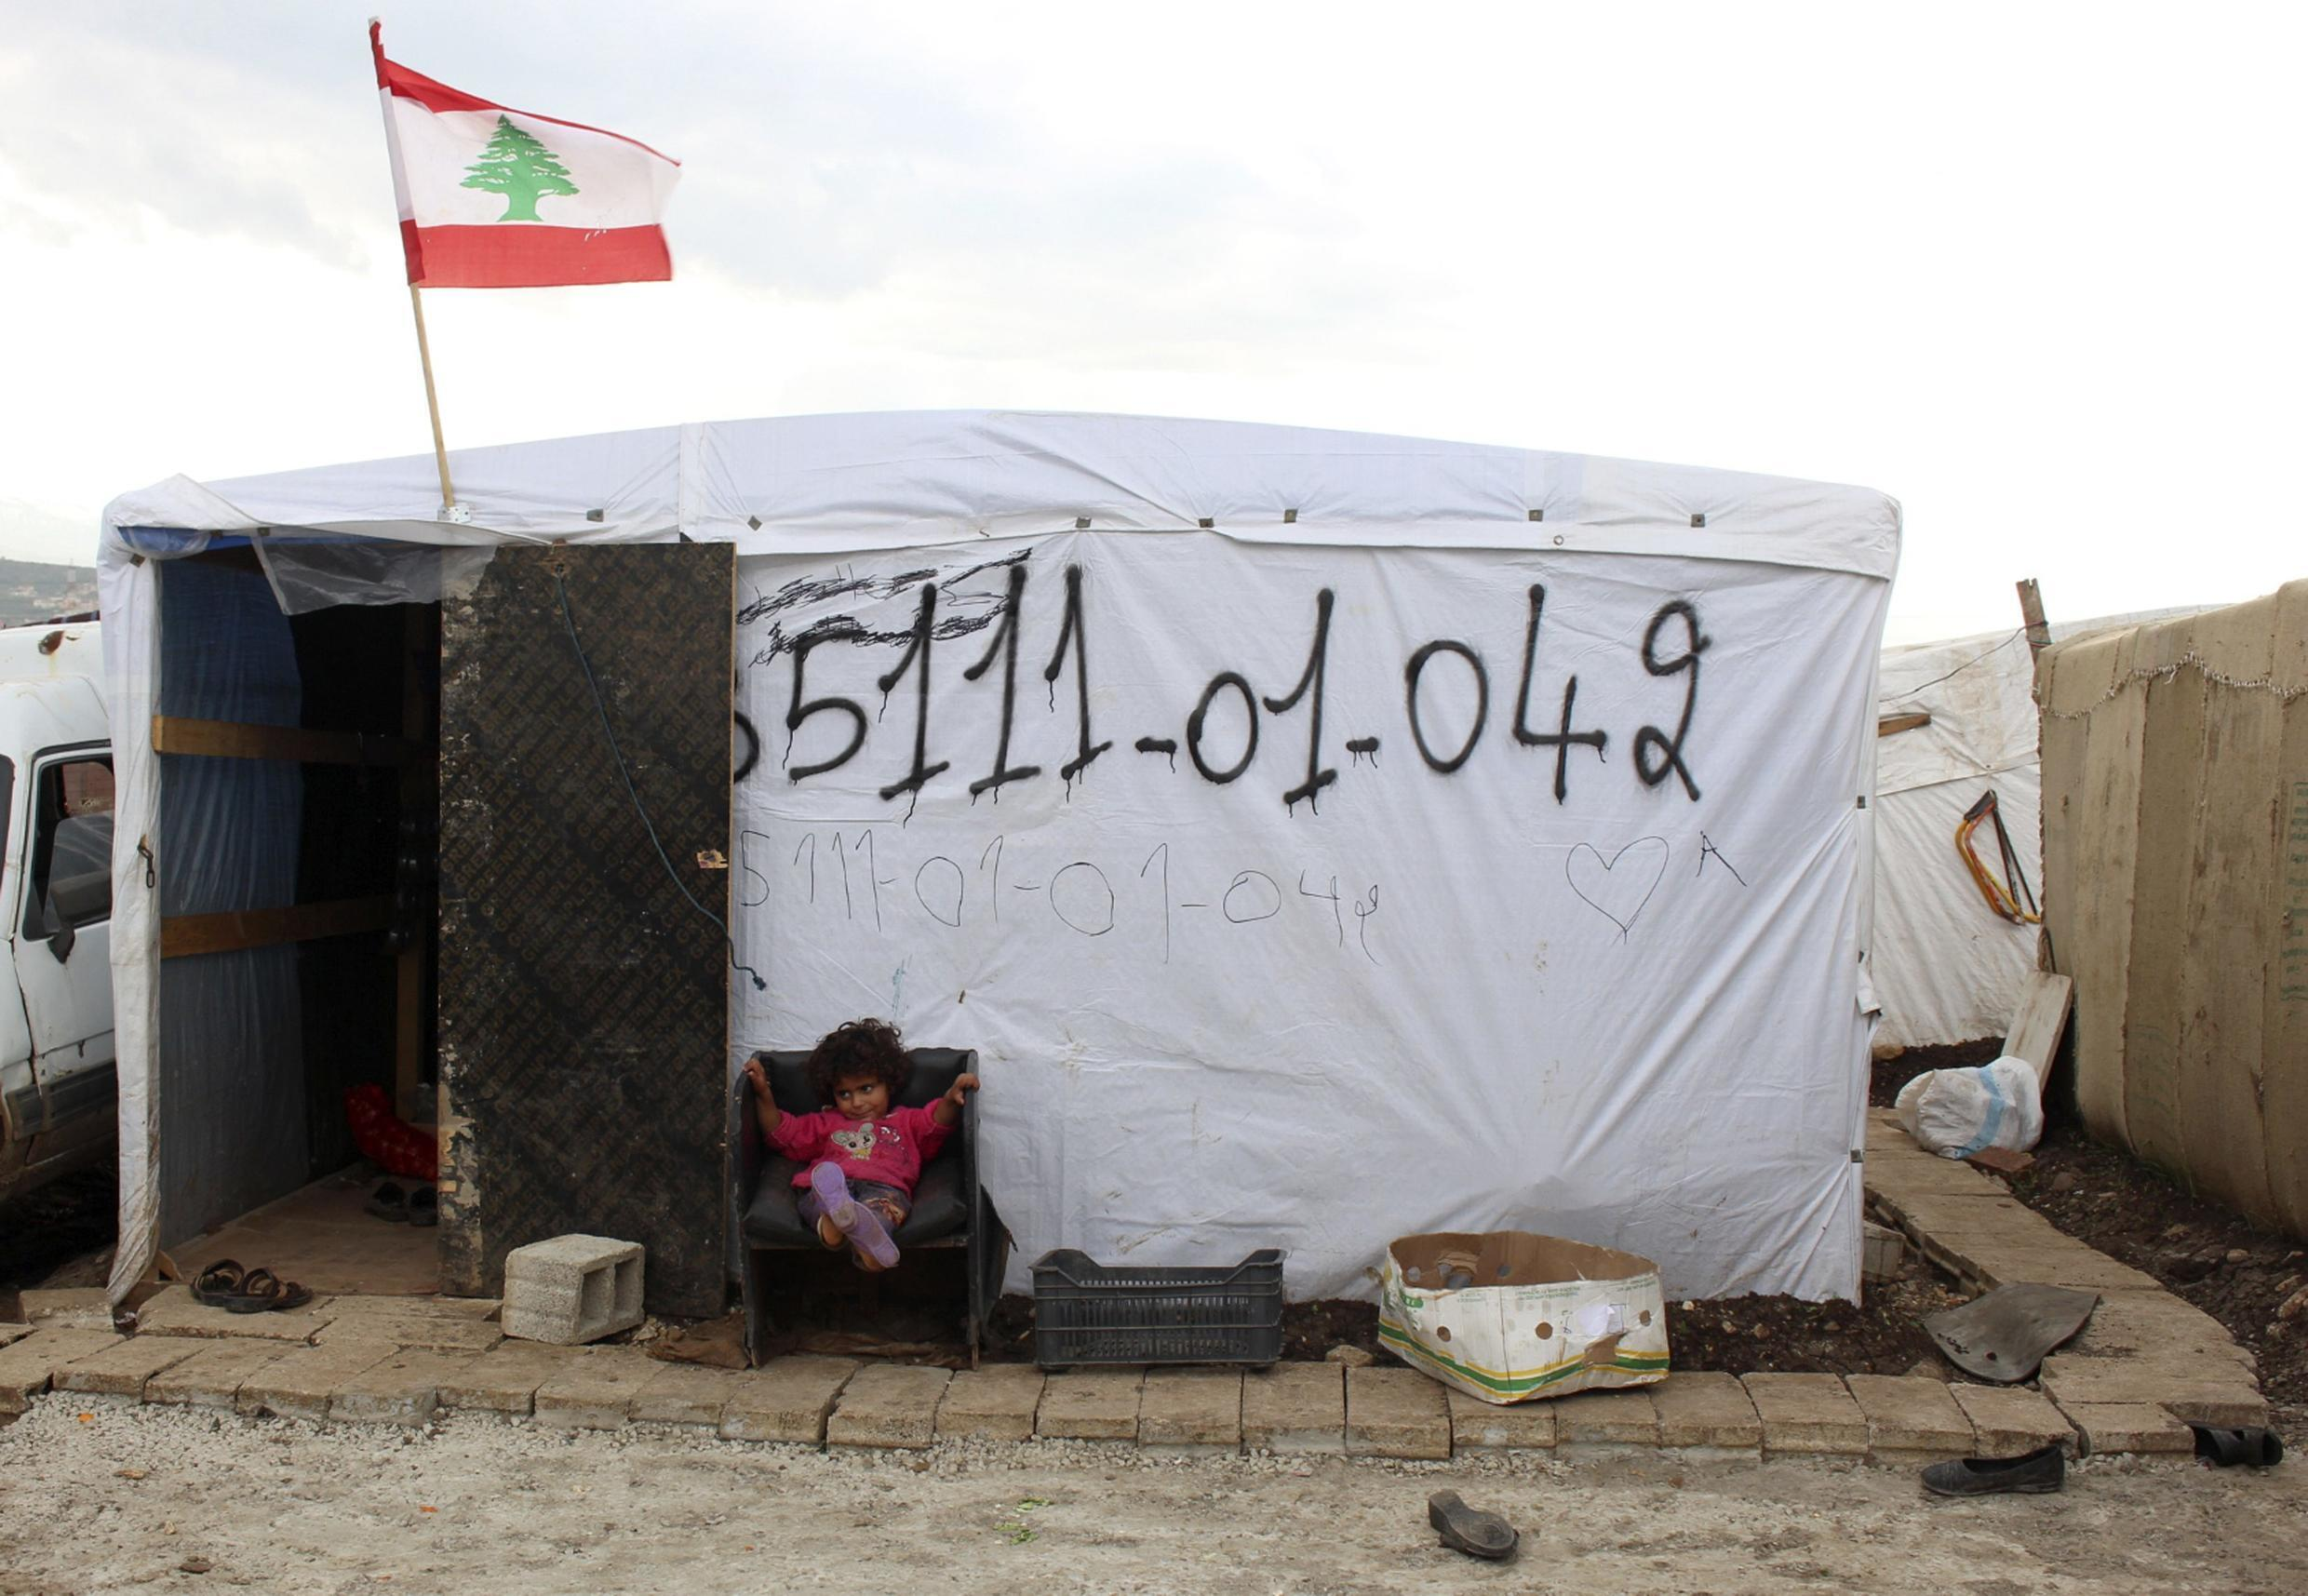 A Syrian refugee girl sits outside a tent at a refugee camp in Akkar, northern Lebanon, 9 December, 2014